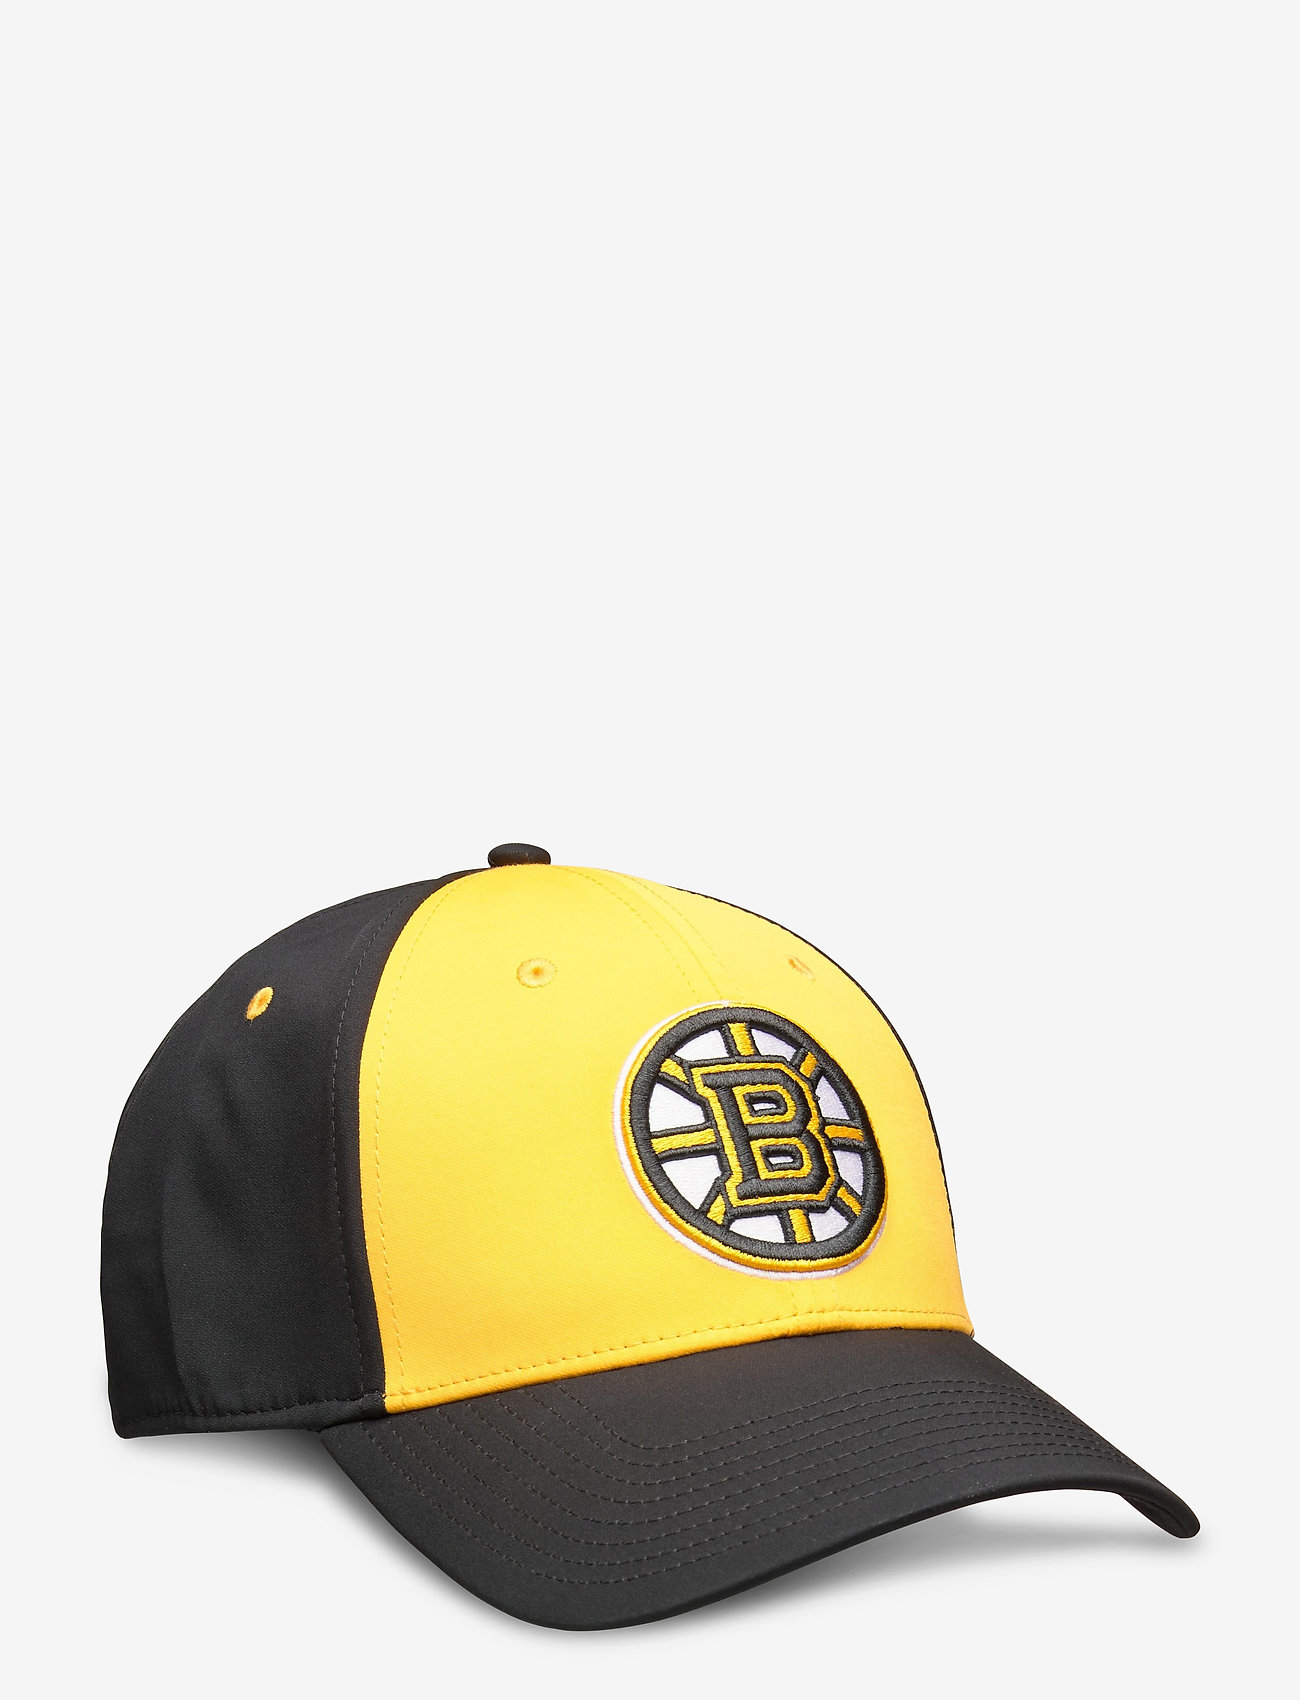 Fanatics - Boston Bruins Iconic Defender Stretch Fit Cap - caps - black/yellow gold - 0